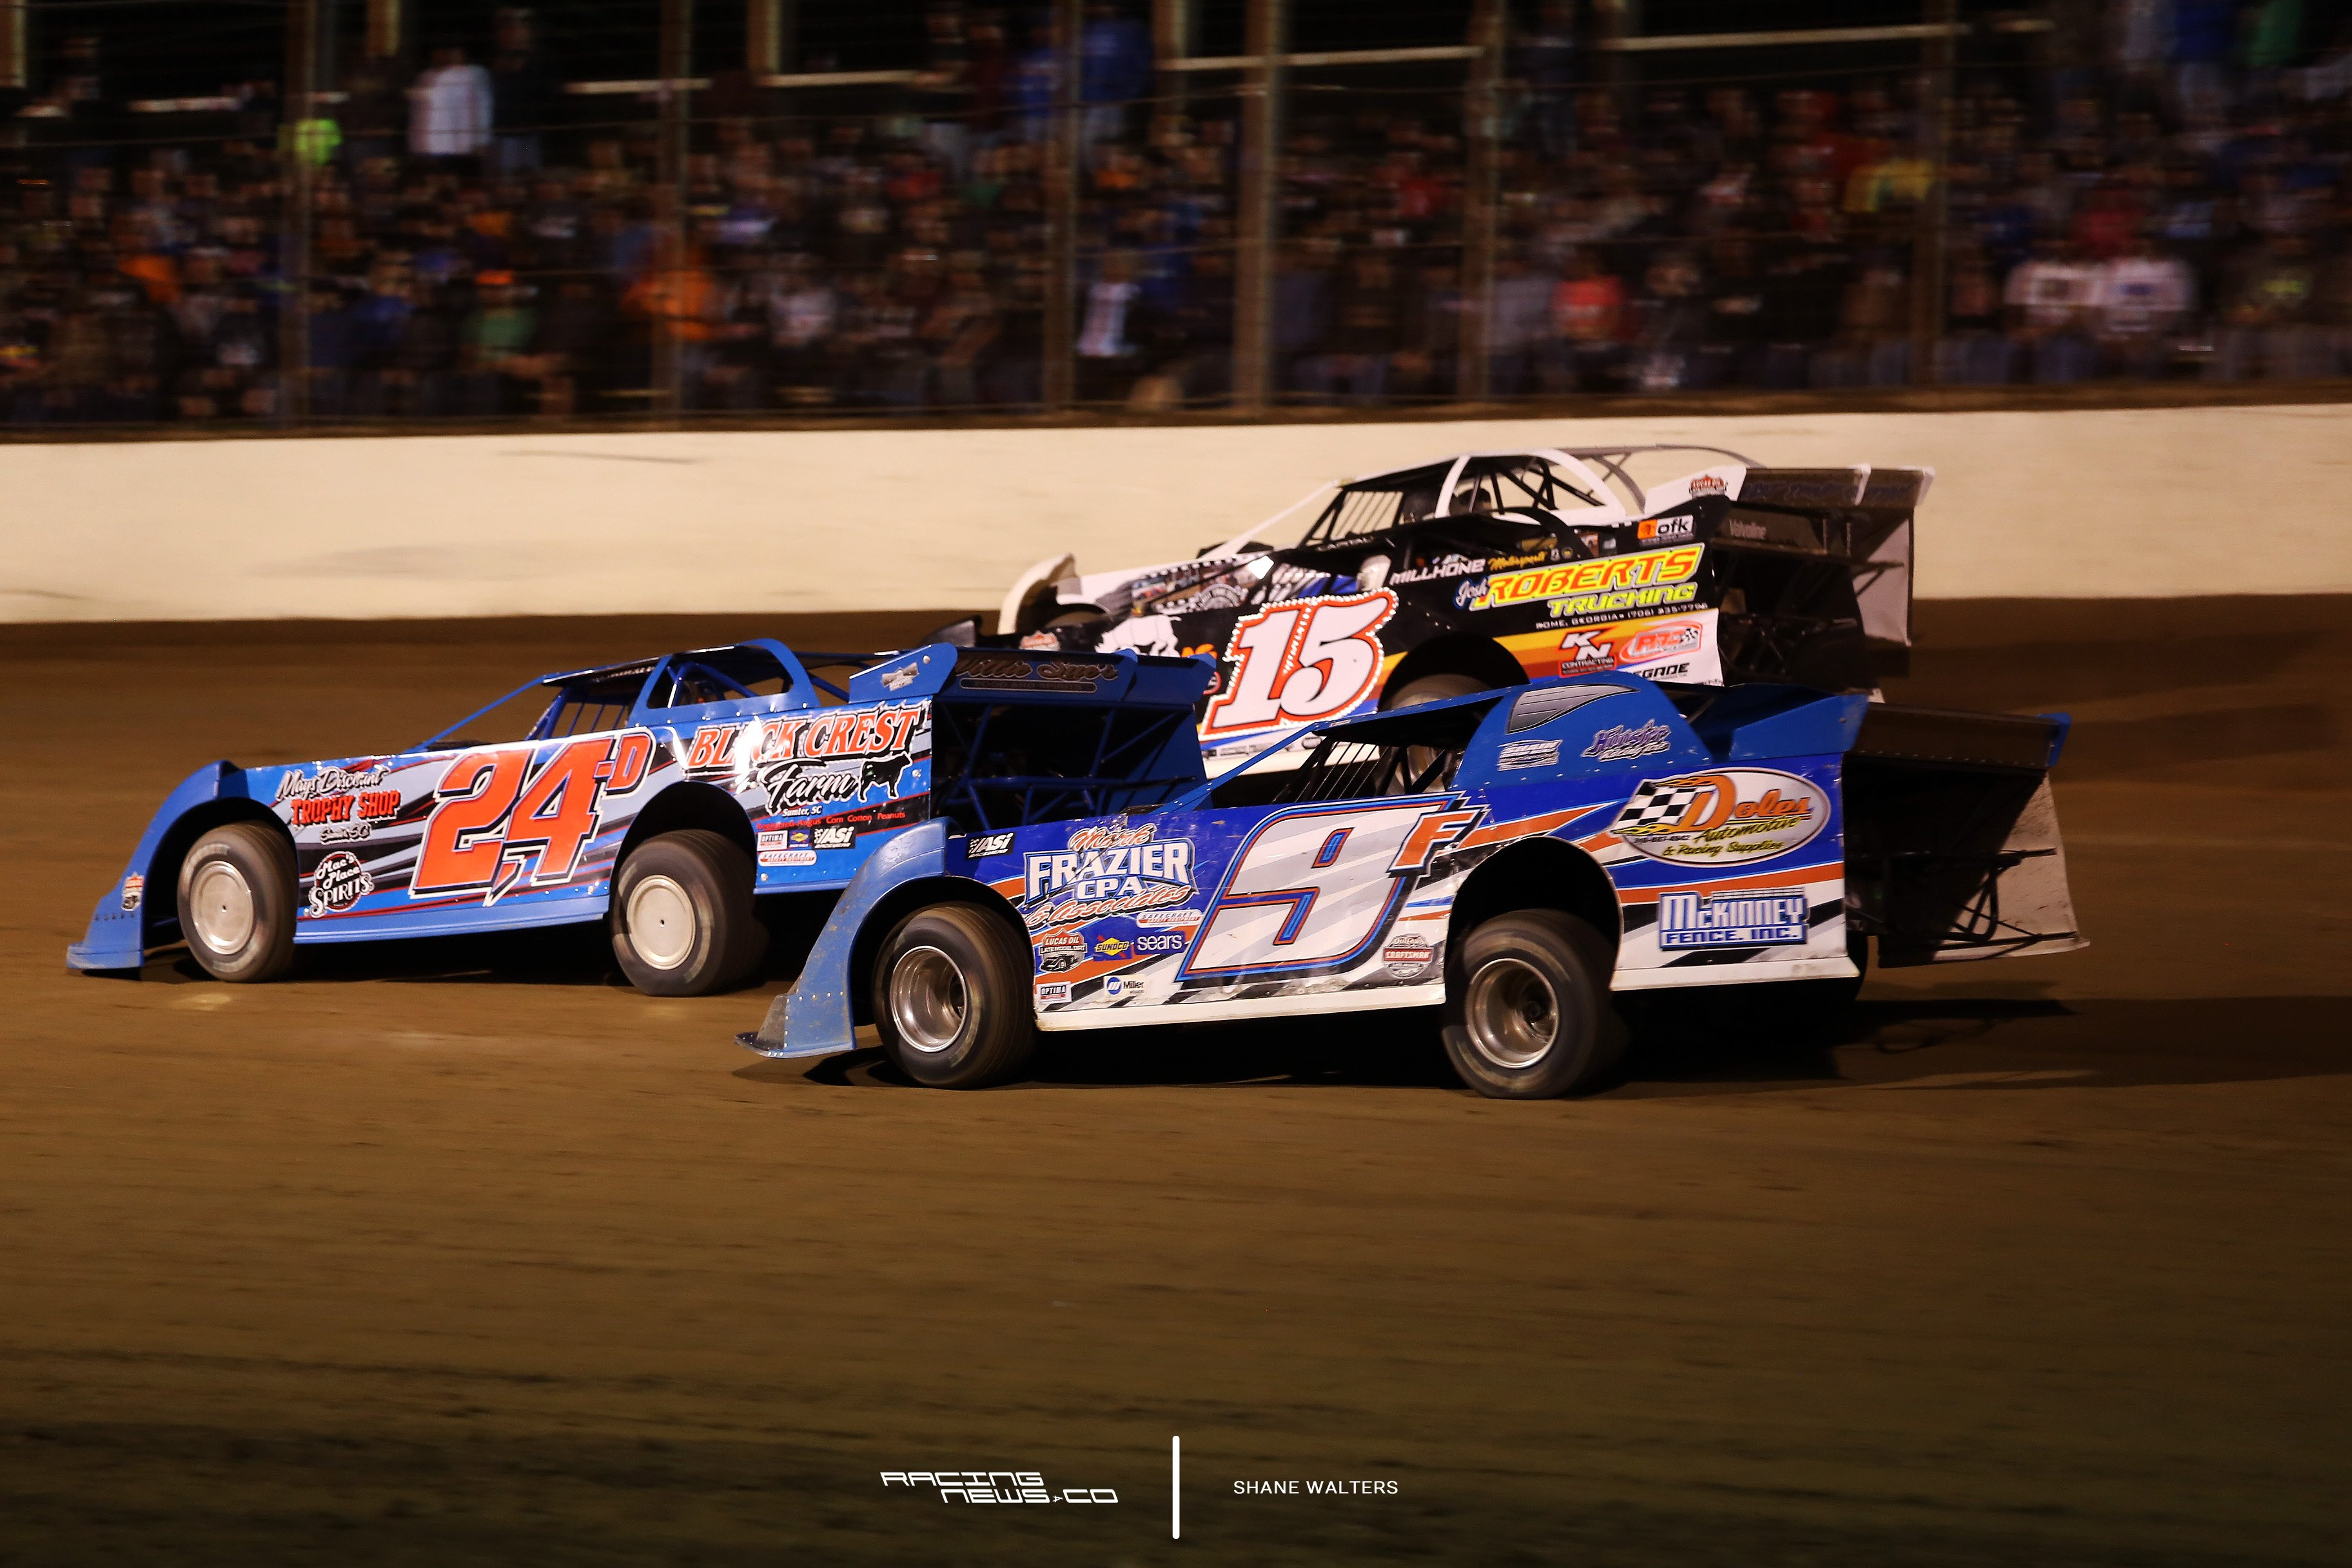 3 wide in the 2017 DTWC 1631